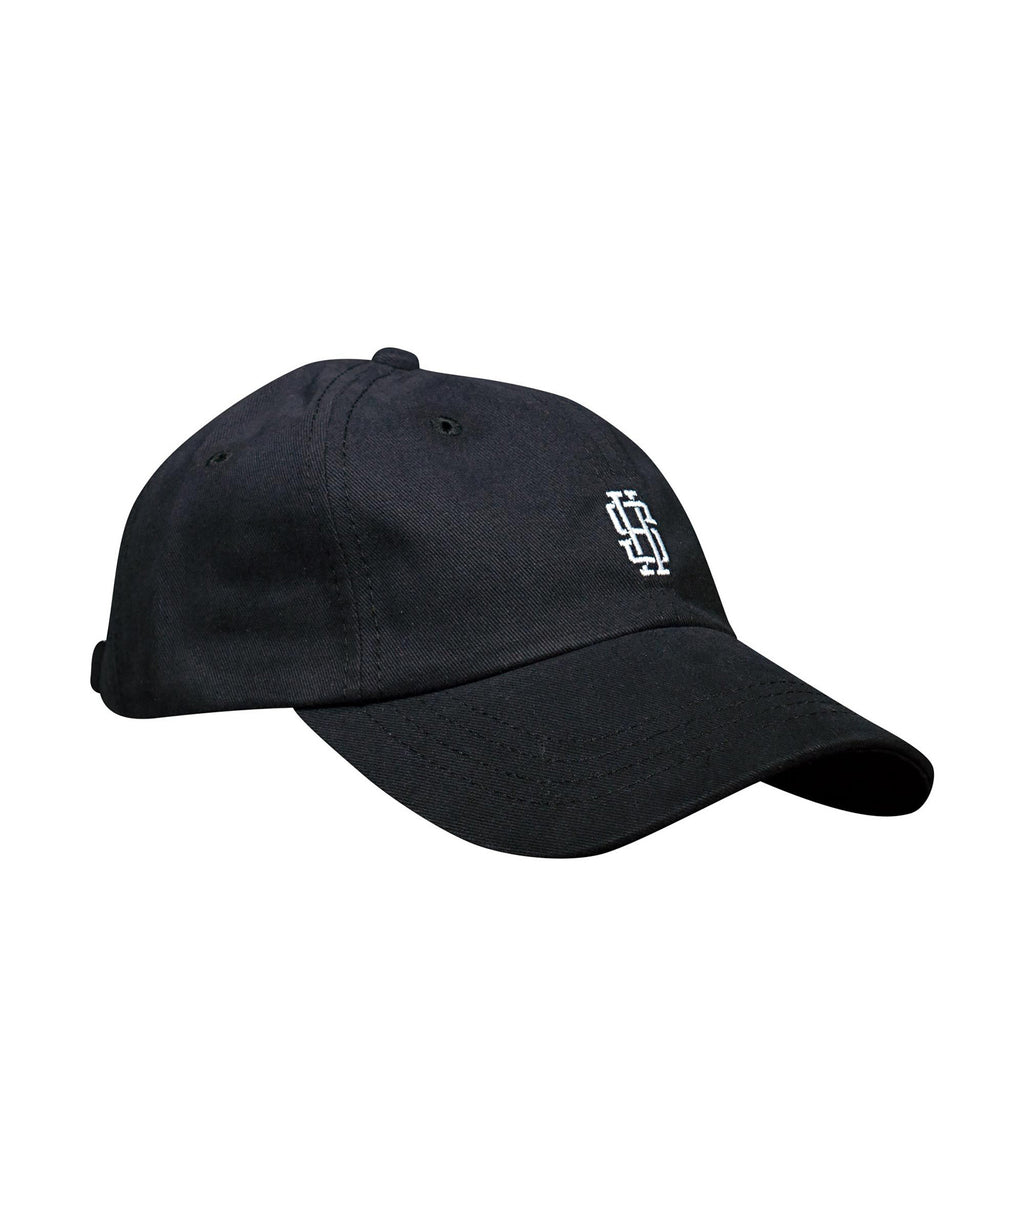 Monogram Dad Hat (Black)